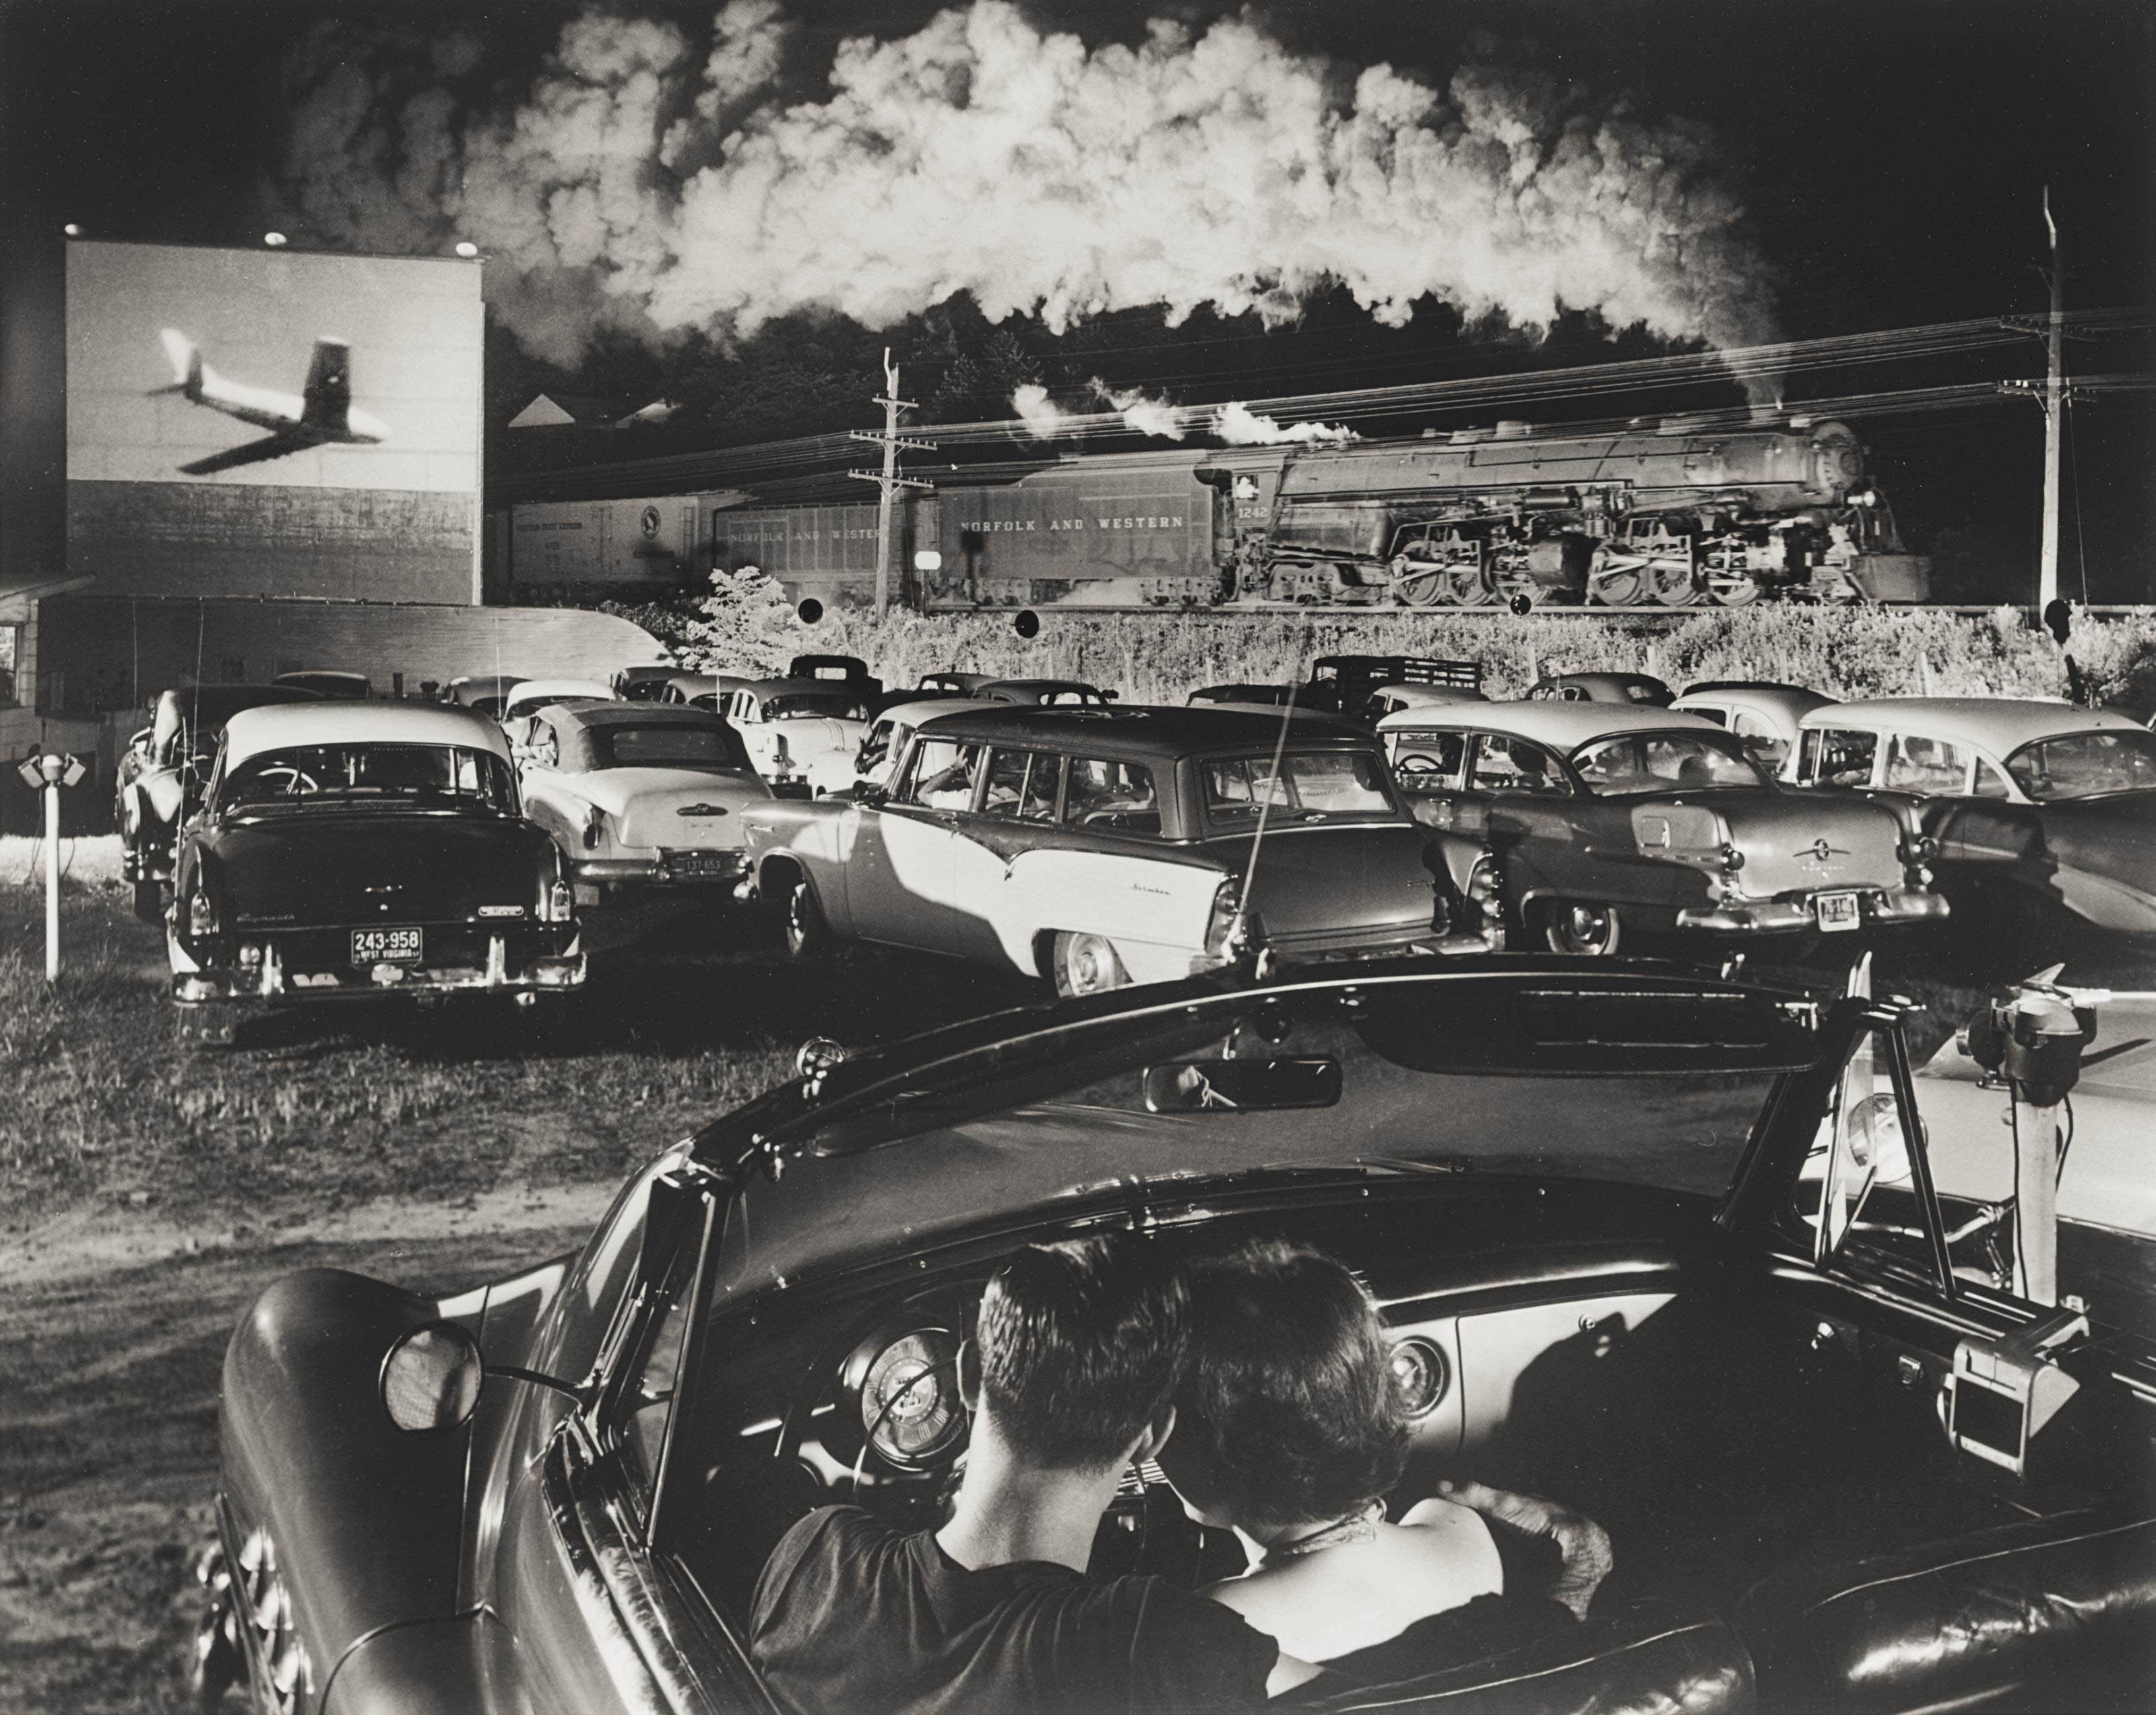 Hotshot, Eastbound, Iager, West Virginia, 1956